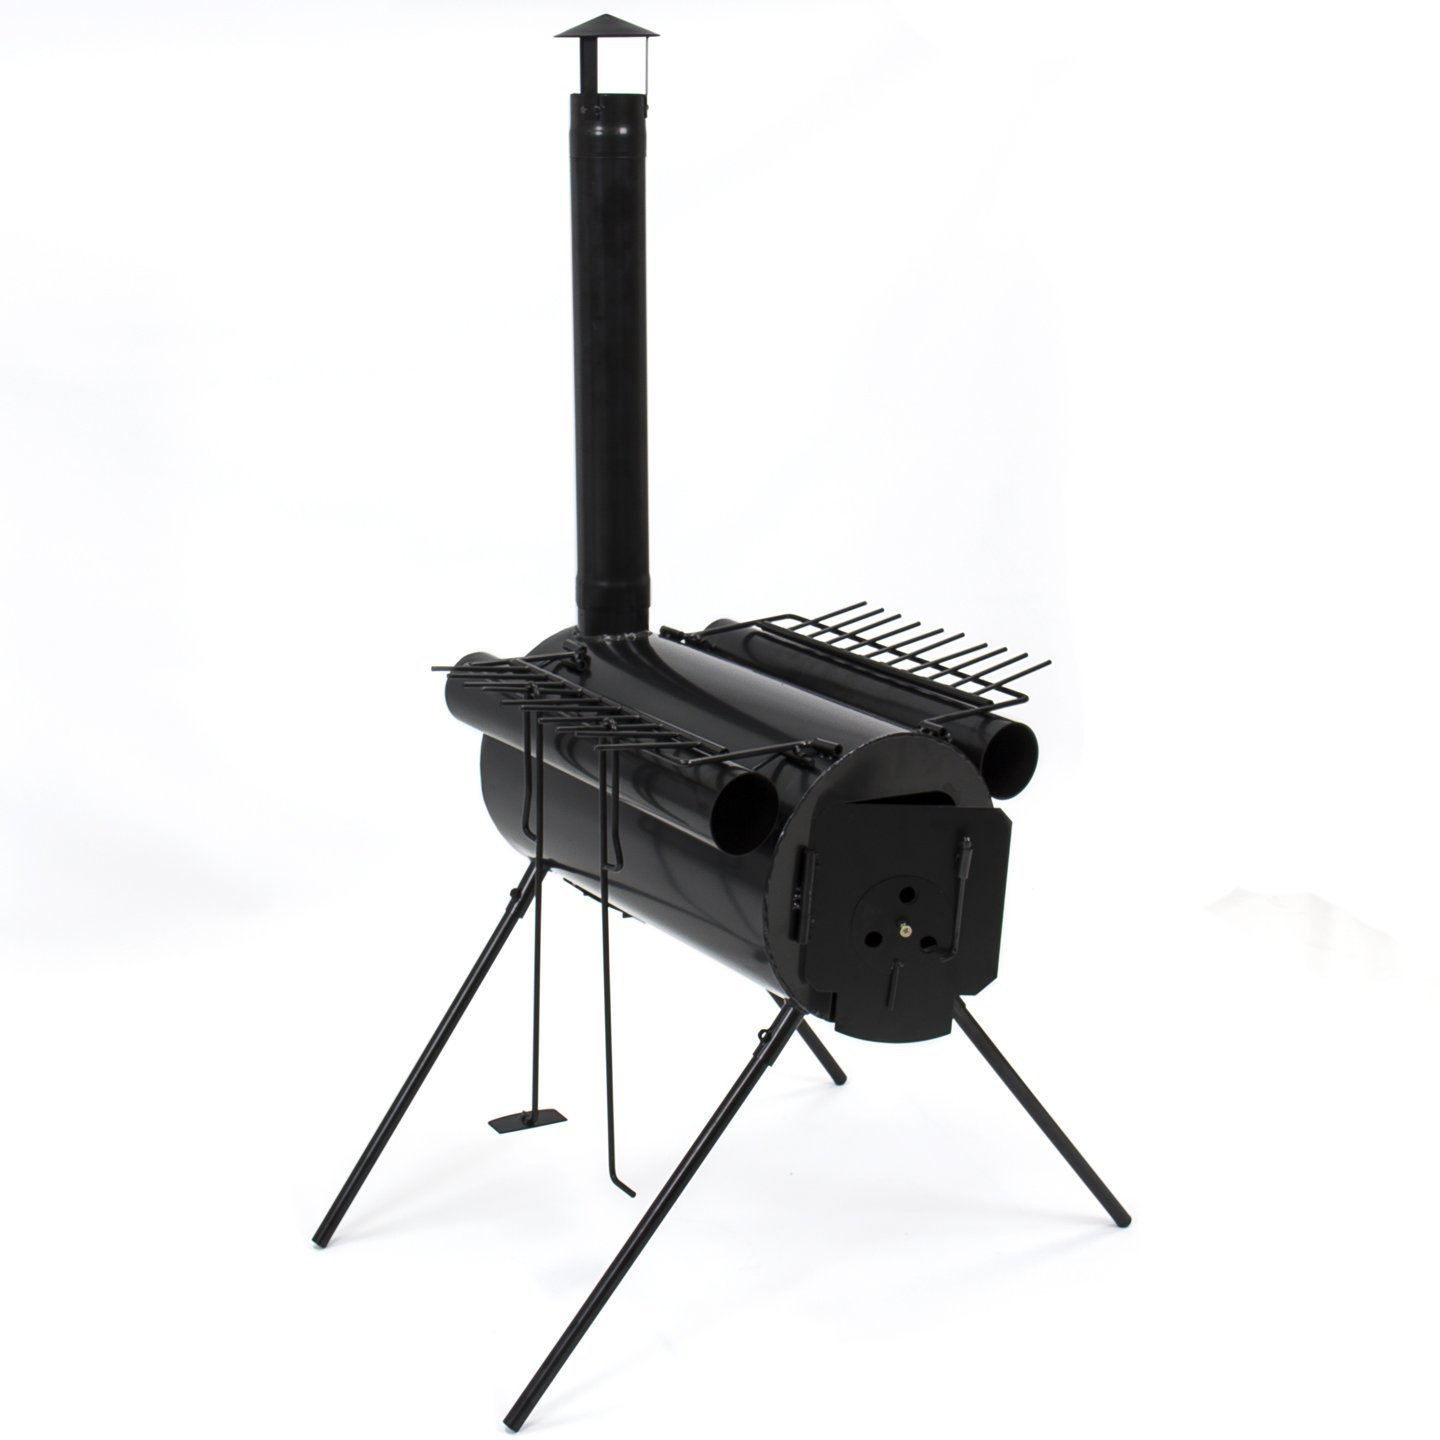 Wood Burning Camp Stoves - Camping Stoves: Now You're Cooking With Gas